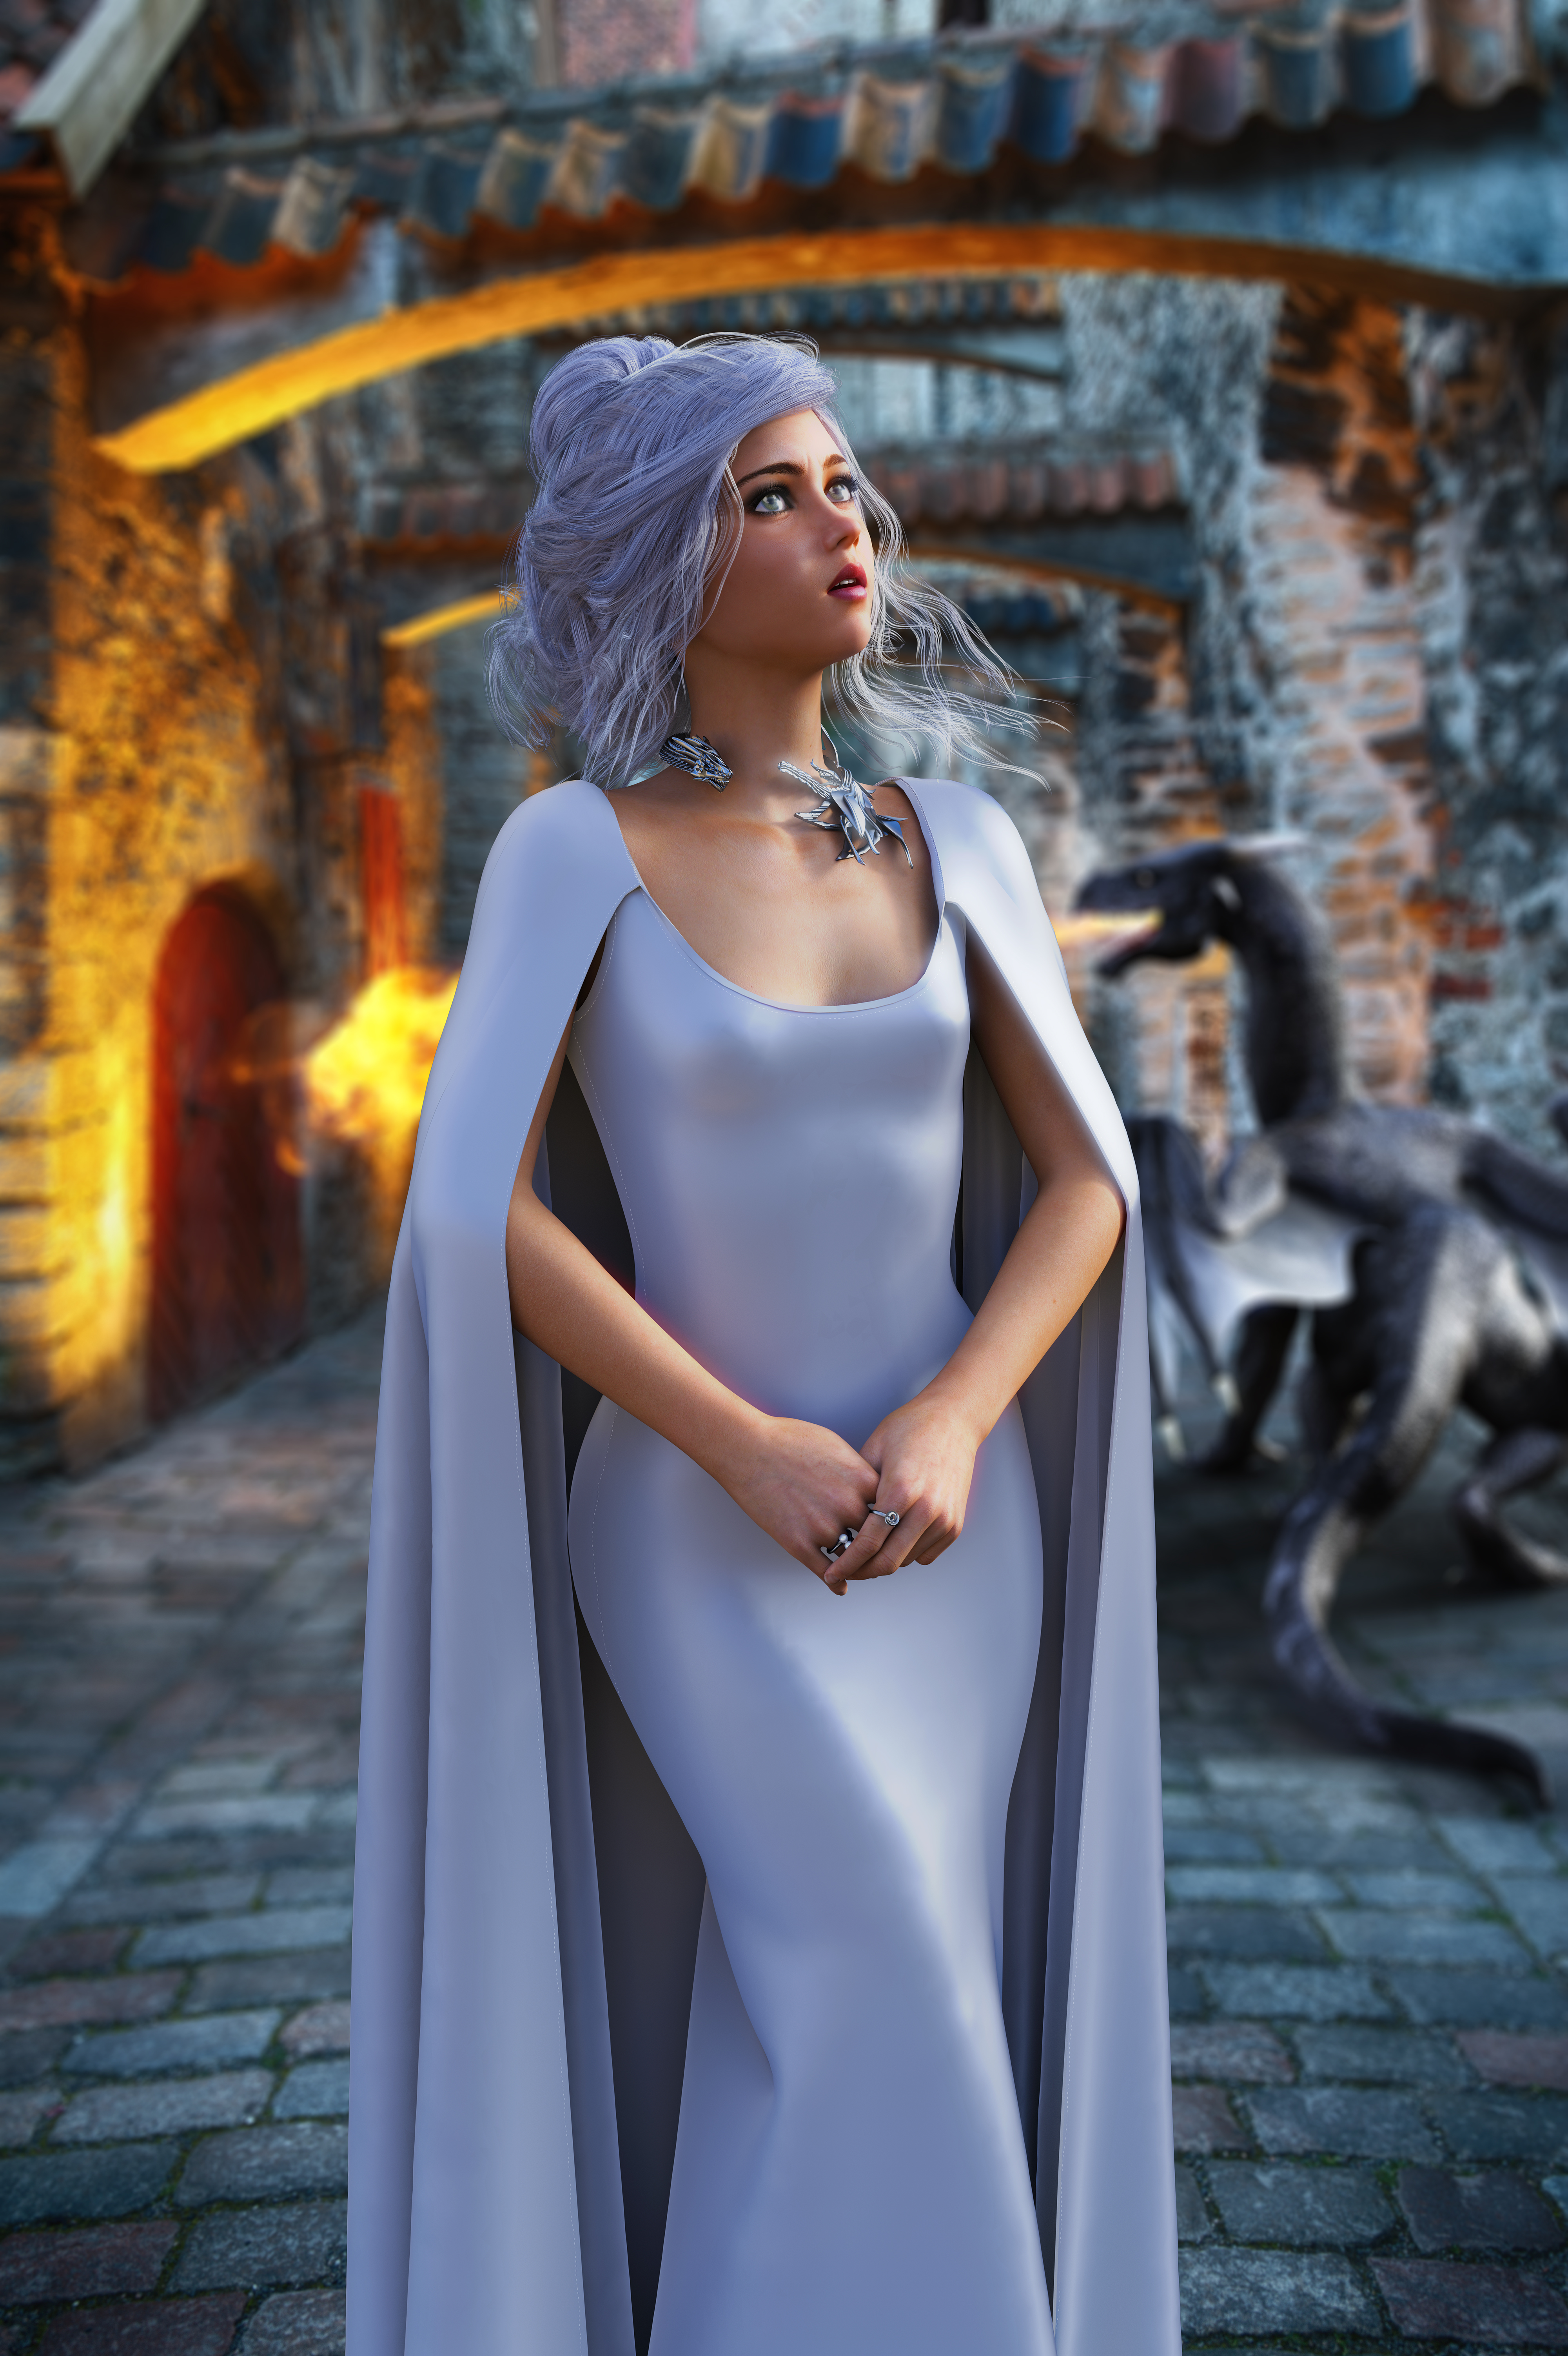 Mother of Dragons by jsgknight